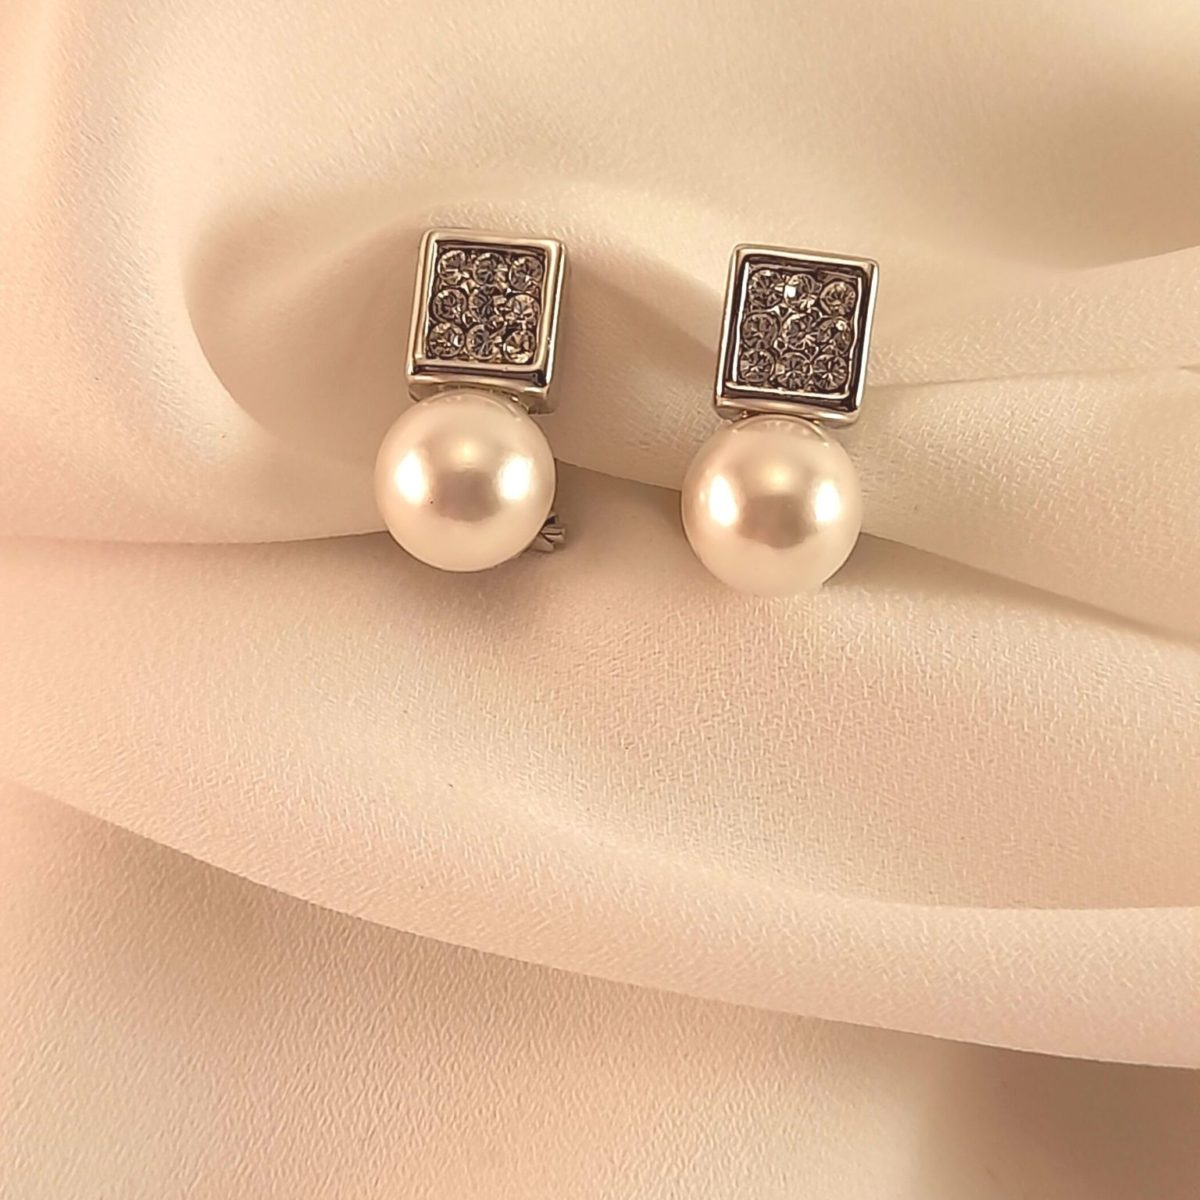 Pearl Earrings With Square Piece And Diamonds